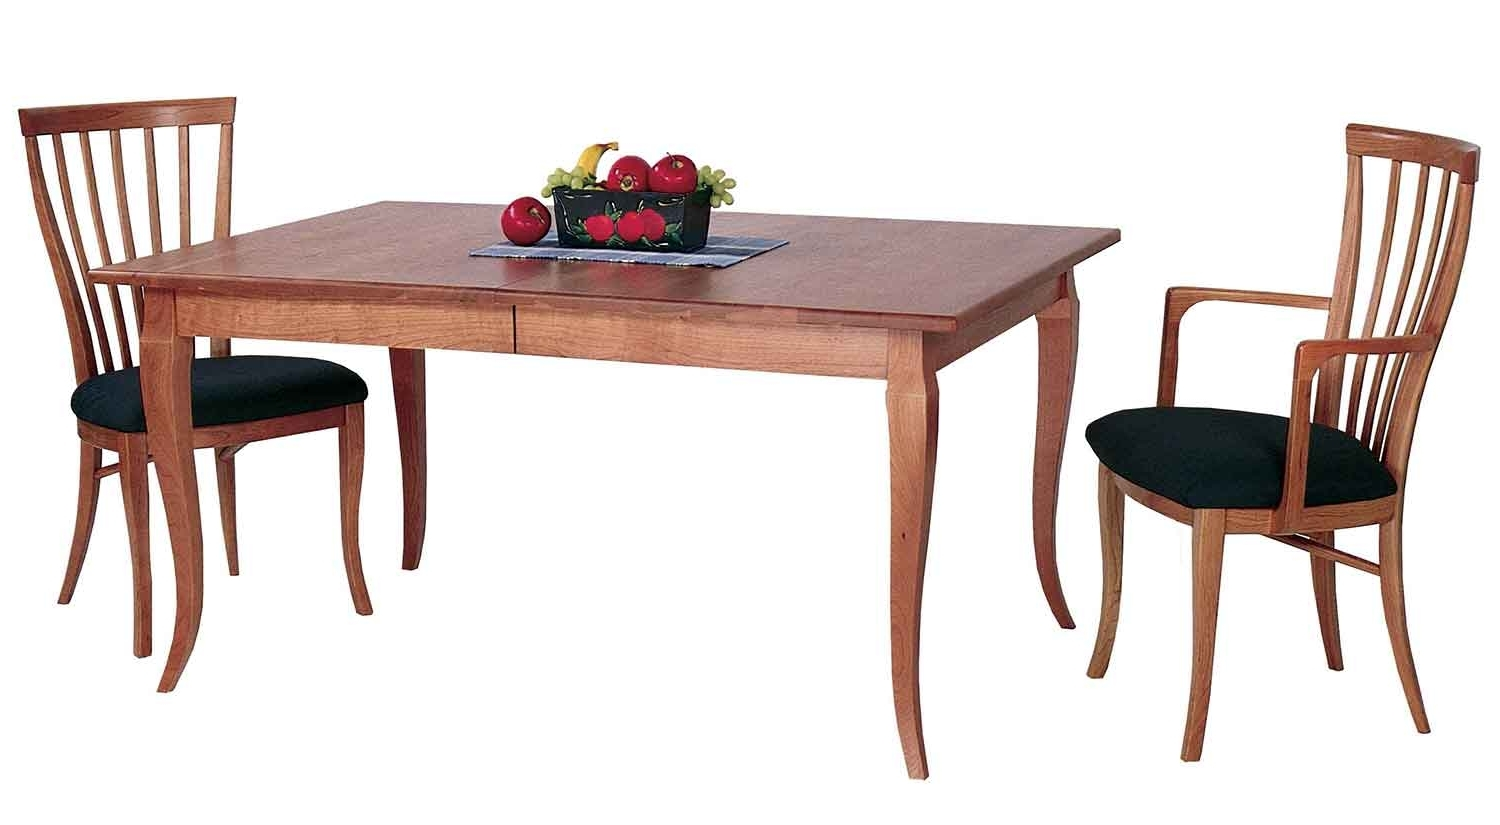 French Country Dining Tables Inside 2018 Circle Furniture – French Country Dining Table In Cherry (View 17 of 25)